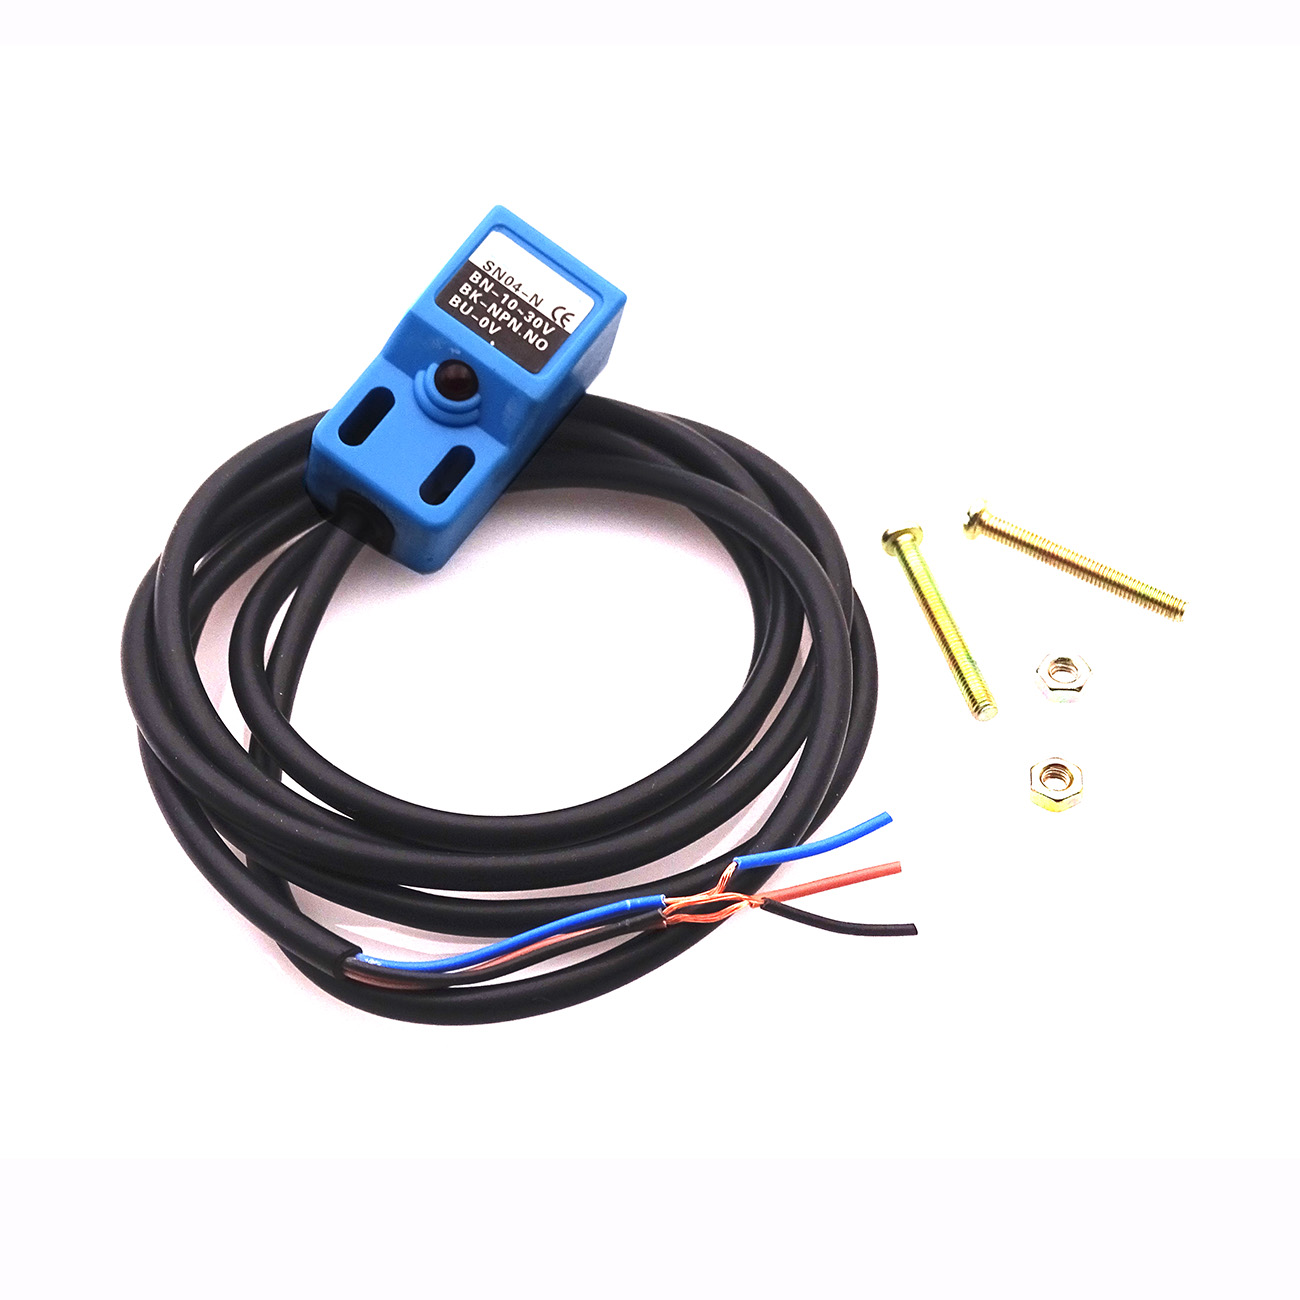 1pcs Sn04 N 4mm Inductive Proximity Sensor Detection Switch Npn No Html On Circuit Dc 10 30v Metal 3 Wire In Integrated Circuits From Electronic Components